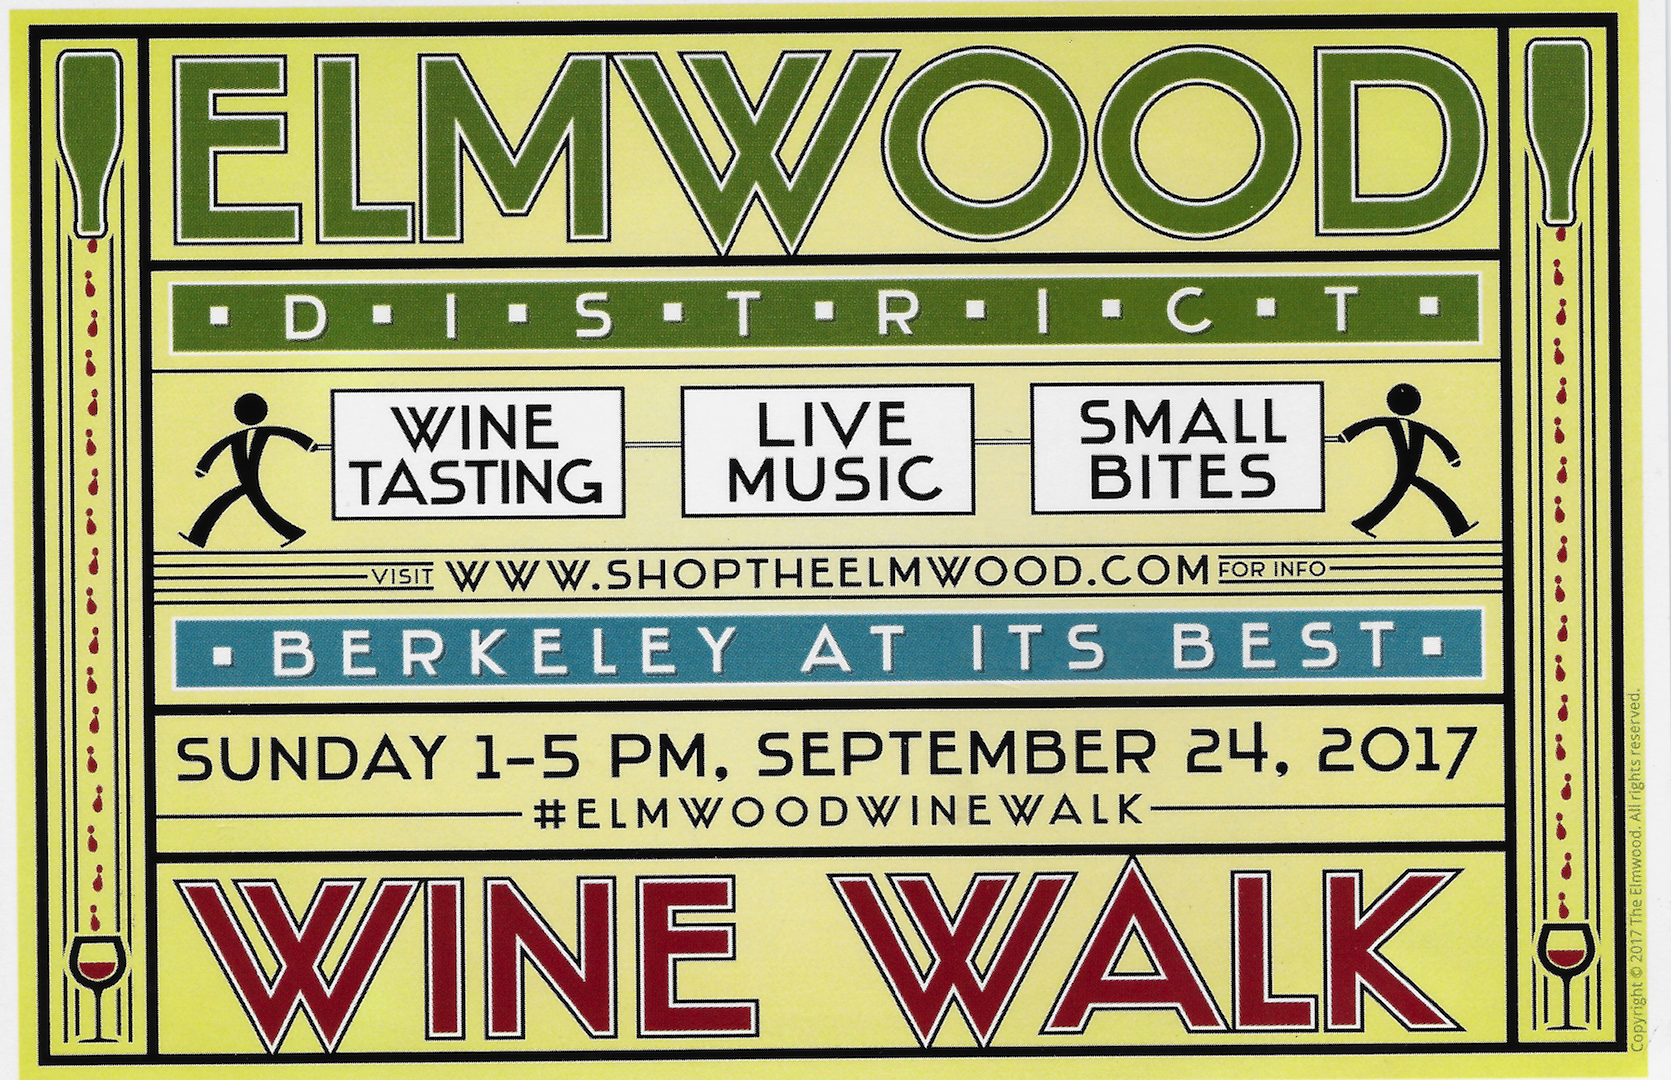 Elmwood_wine_walk.png